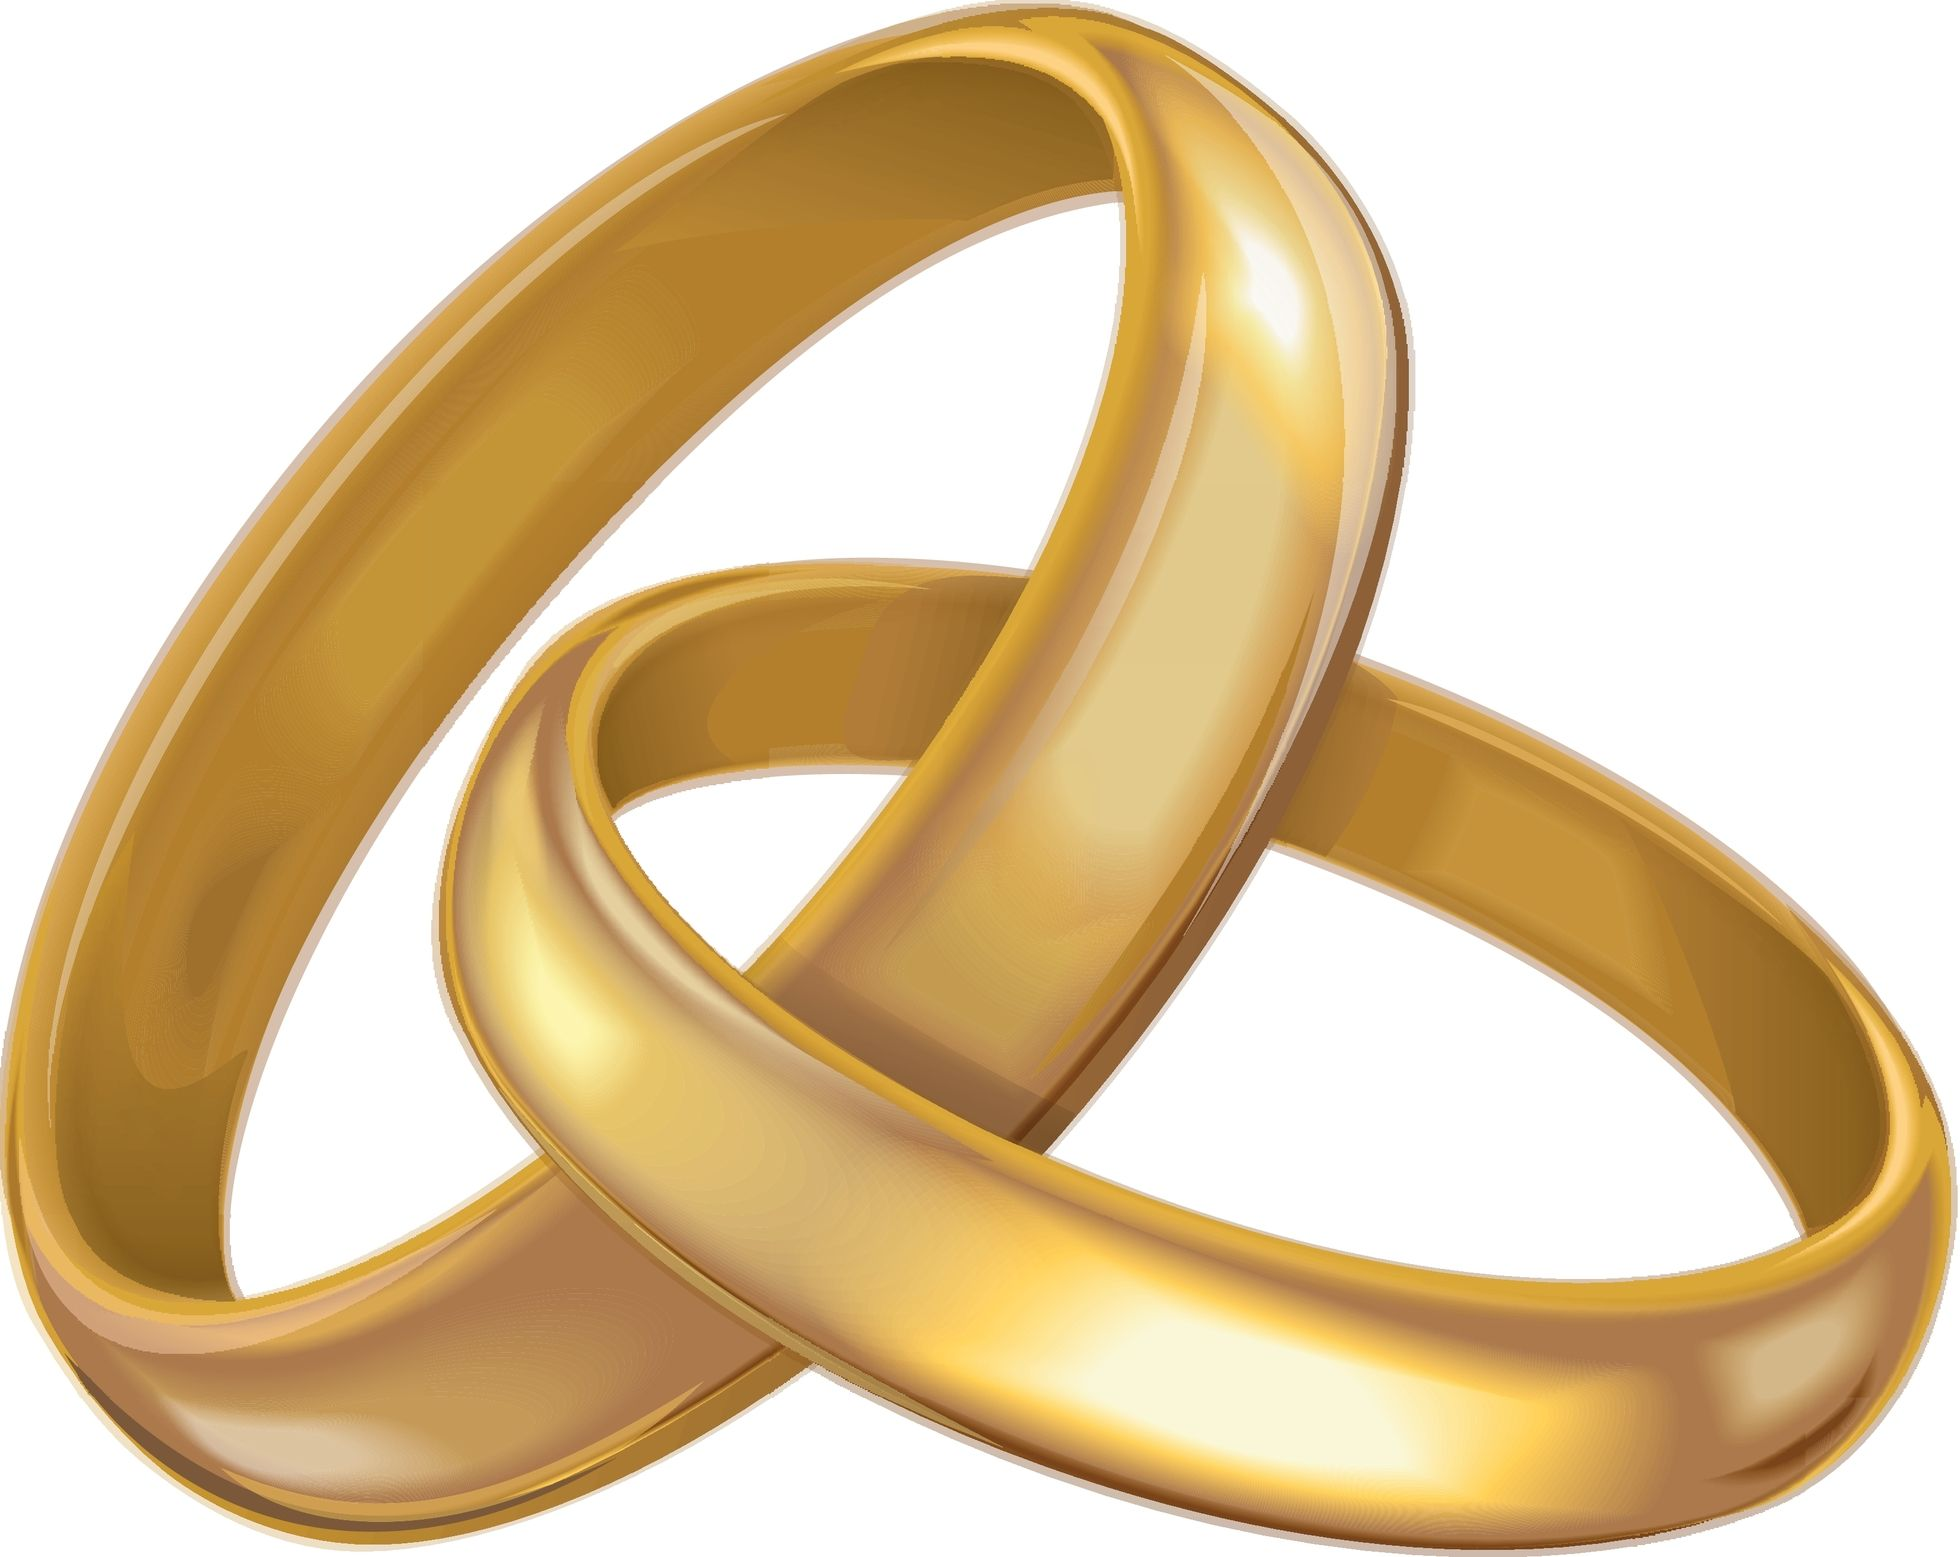 wedding rings clipart with wedding ring clip art wedding.